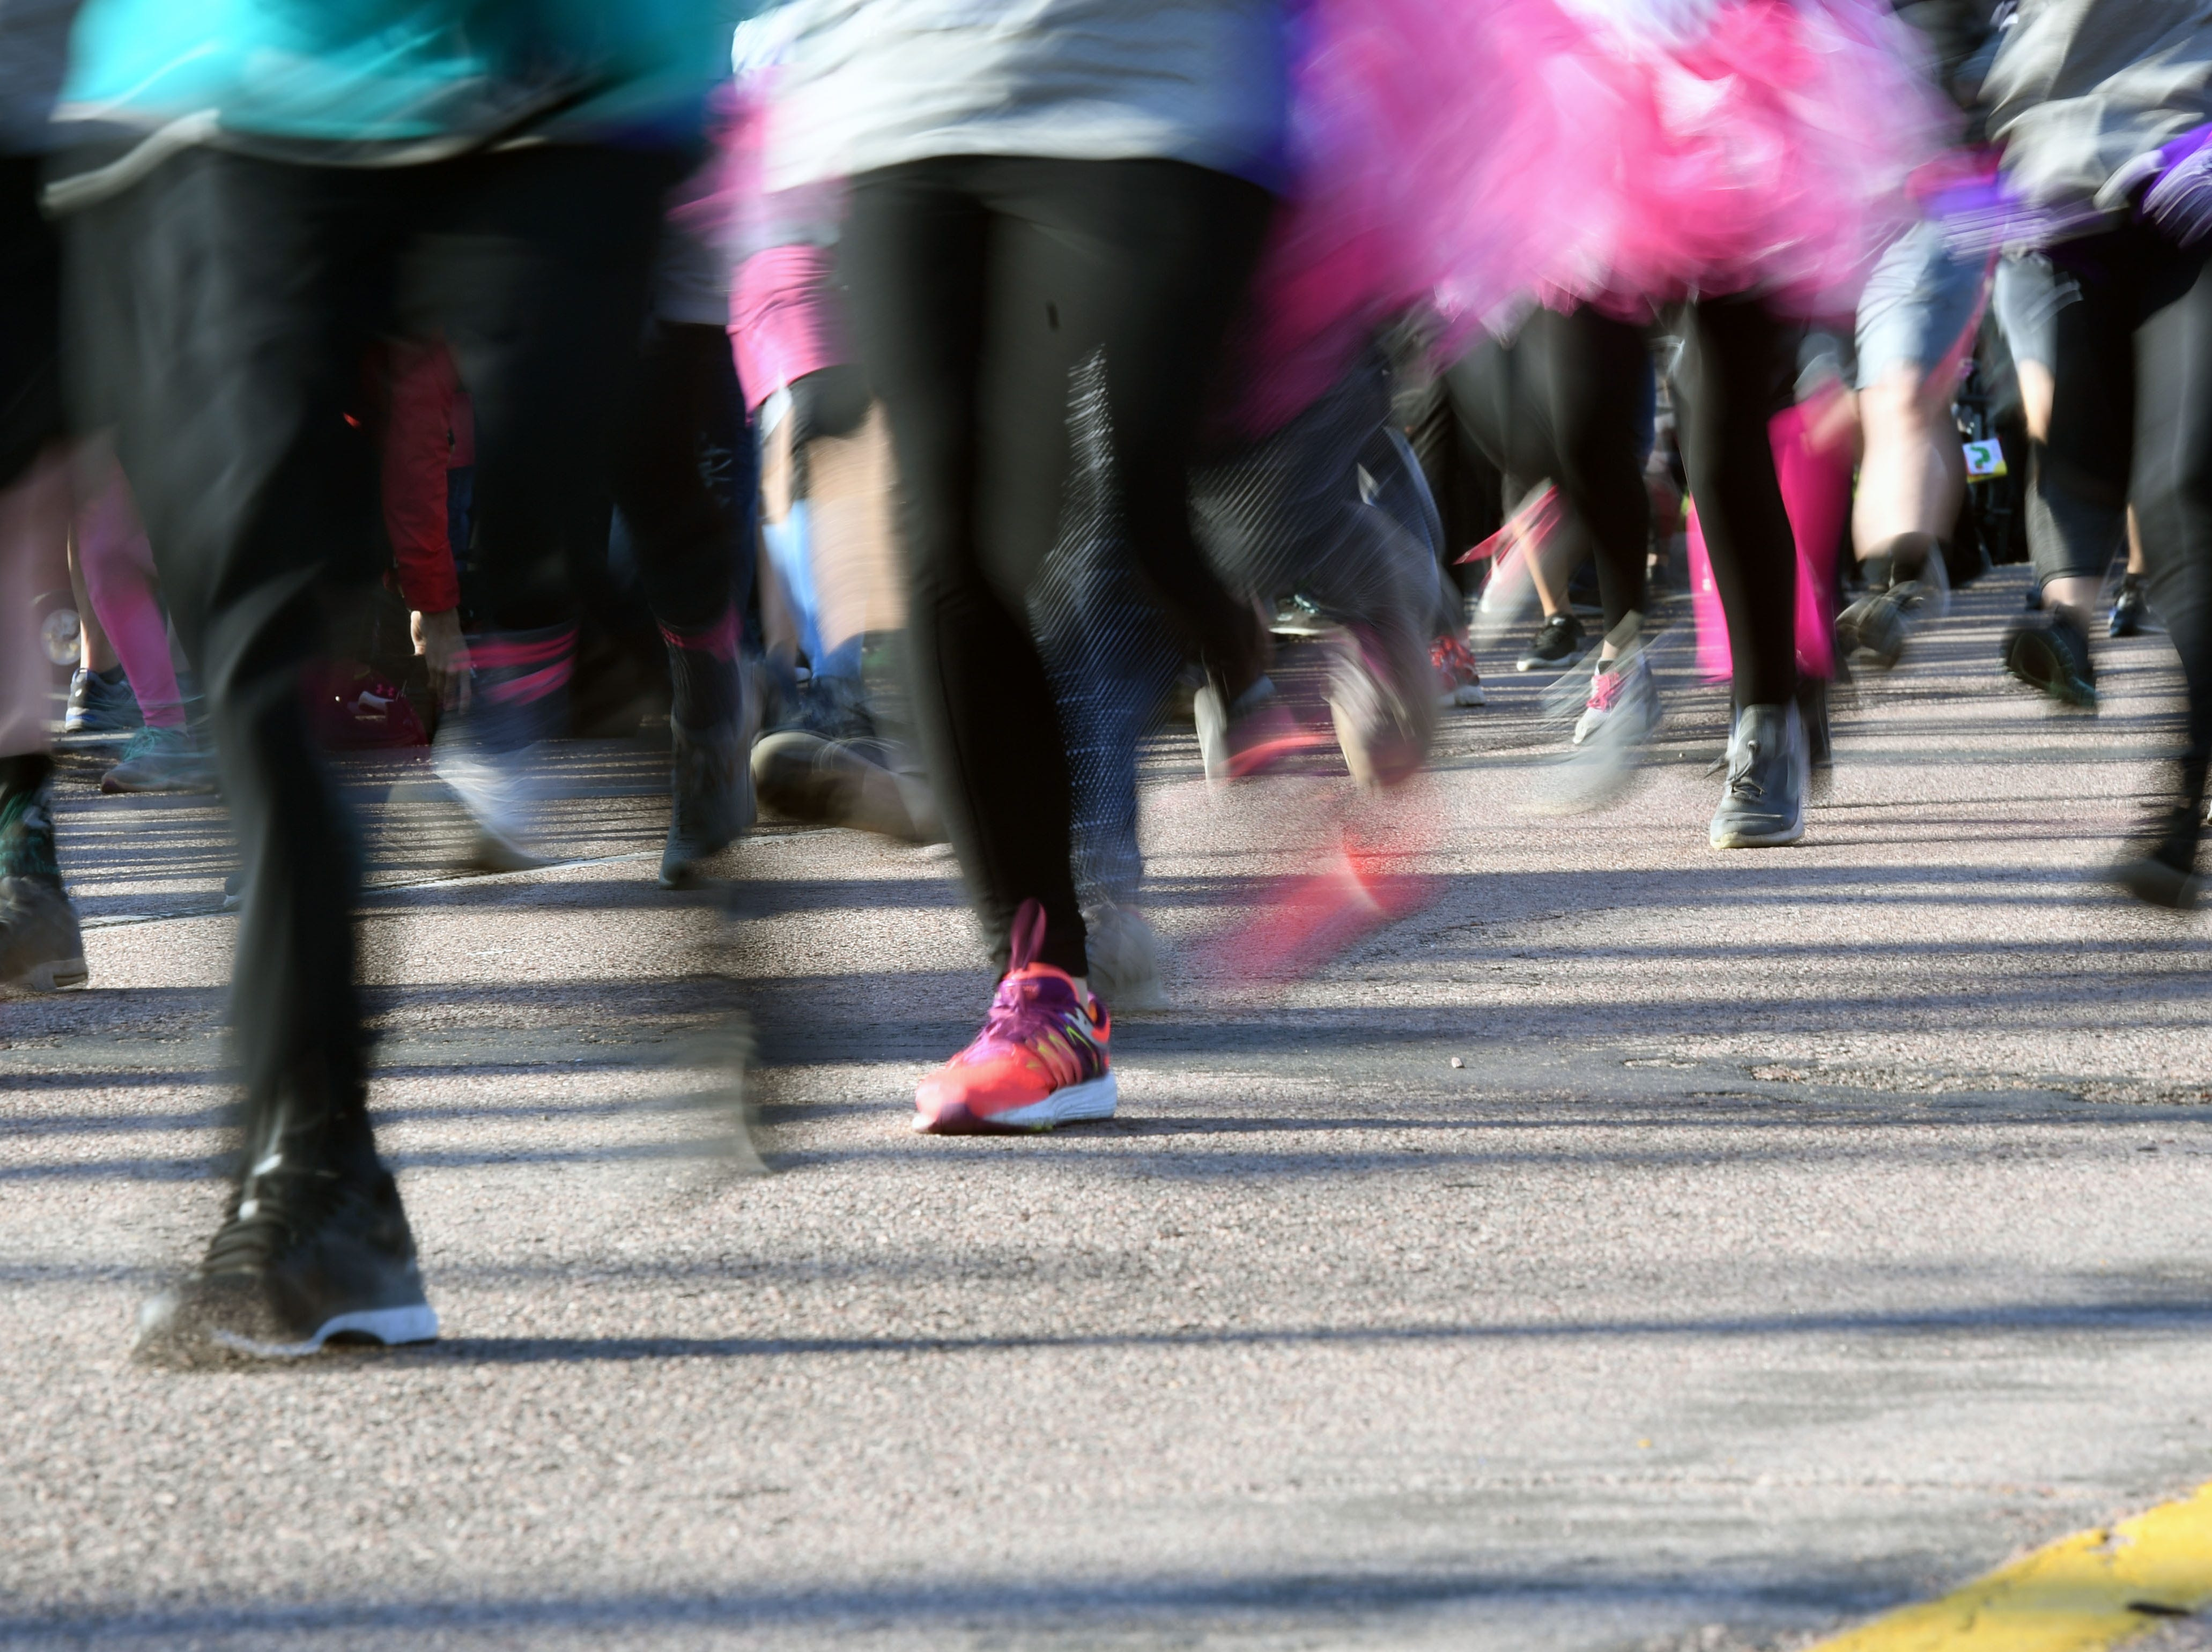 Many runners in the 5K race donned pink running shoes, socks and even tutus for the 31st Avera Health Race Against Cancer on Saturday morning, May 11, in Sioux Falls.